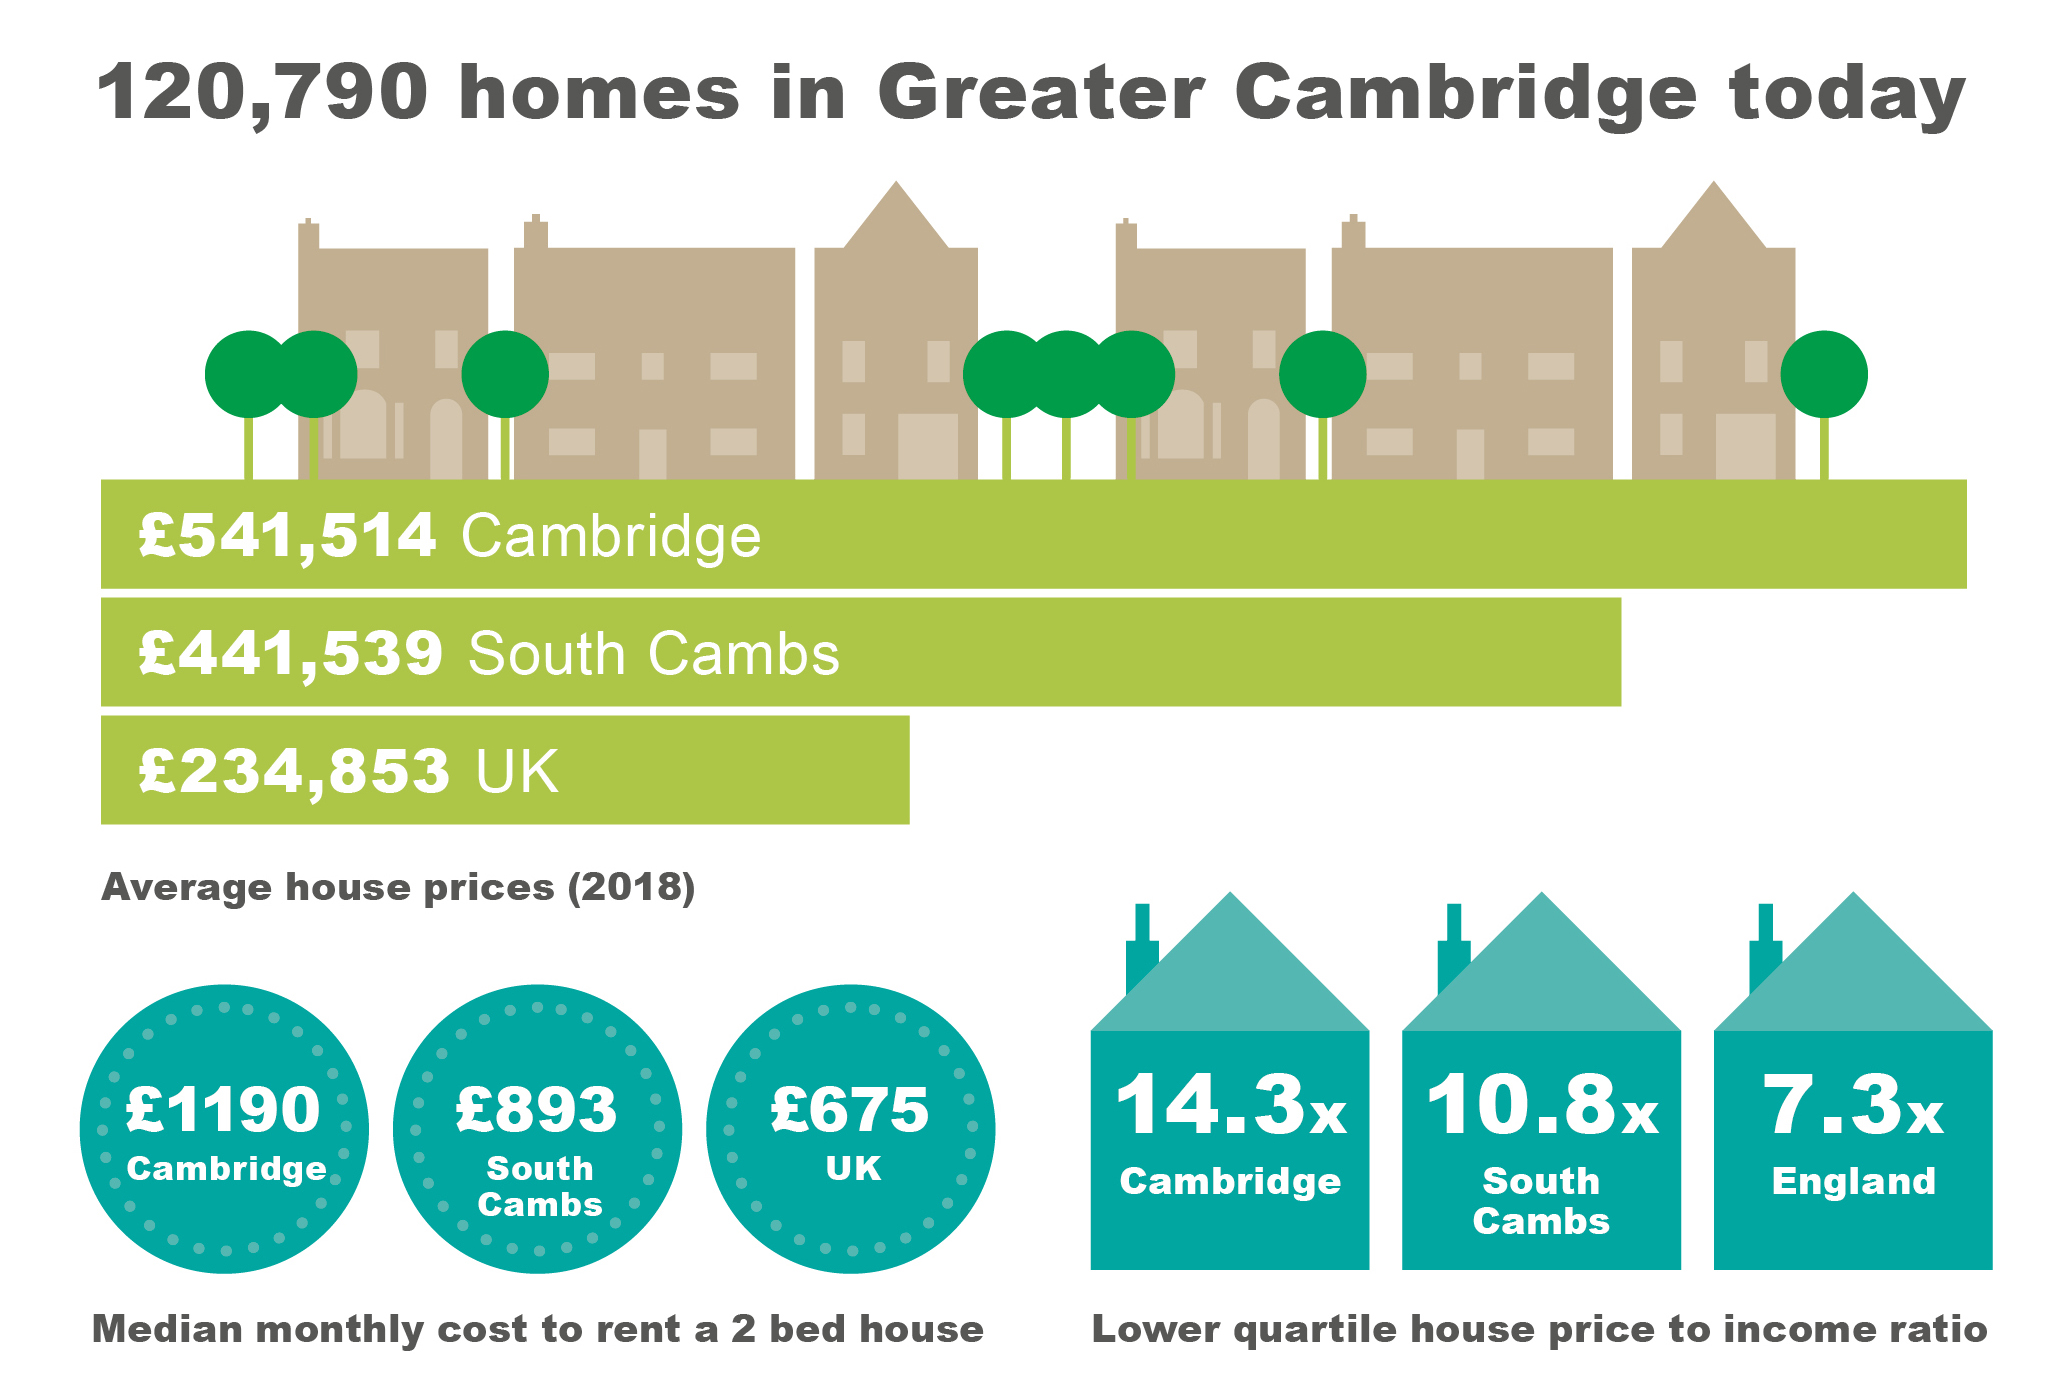 Infographic showing that there are 120,790 homes in Greater Cambridge; average house prices are £541,514 in Cambridge, £441,539 in South Cambs and £234,853 in the UK; the lower quartile price to income ratio is 14.3 for Cambridge, 10.8 (for South Cambs and 7.3 for England; and the median monthly cost to rent a 2 bed house is £1190 in Cambridge, £893 in South Cambs, £675 in the UK